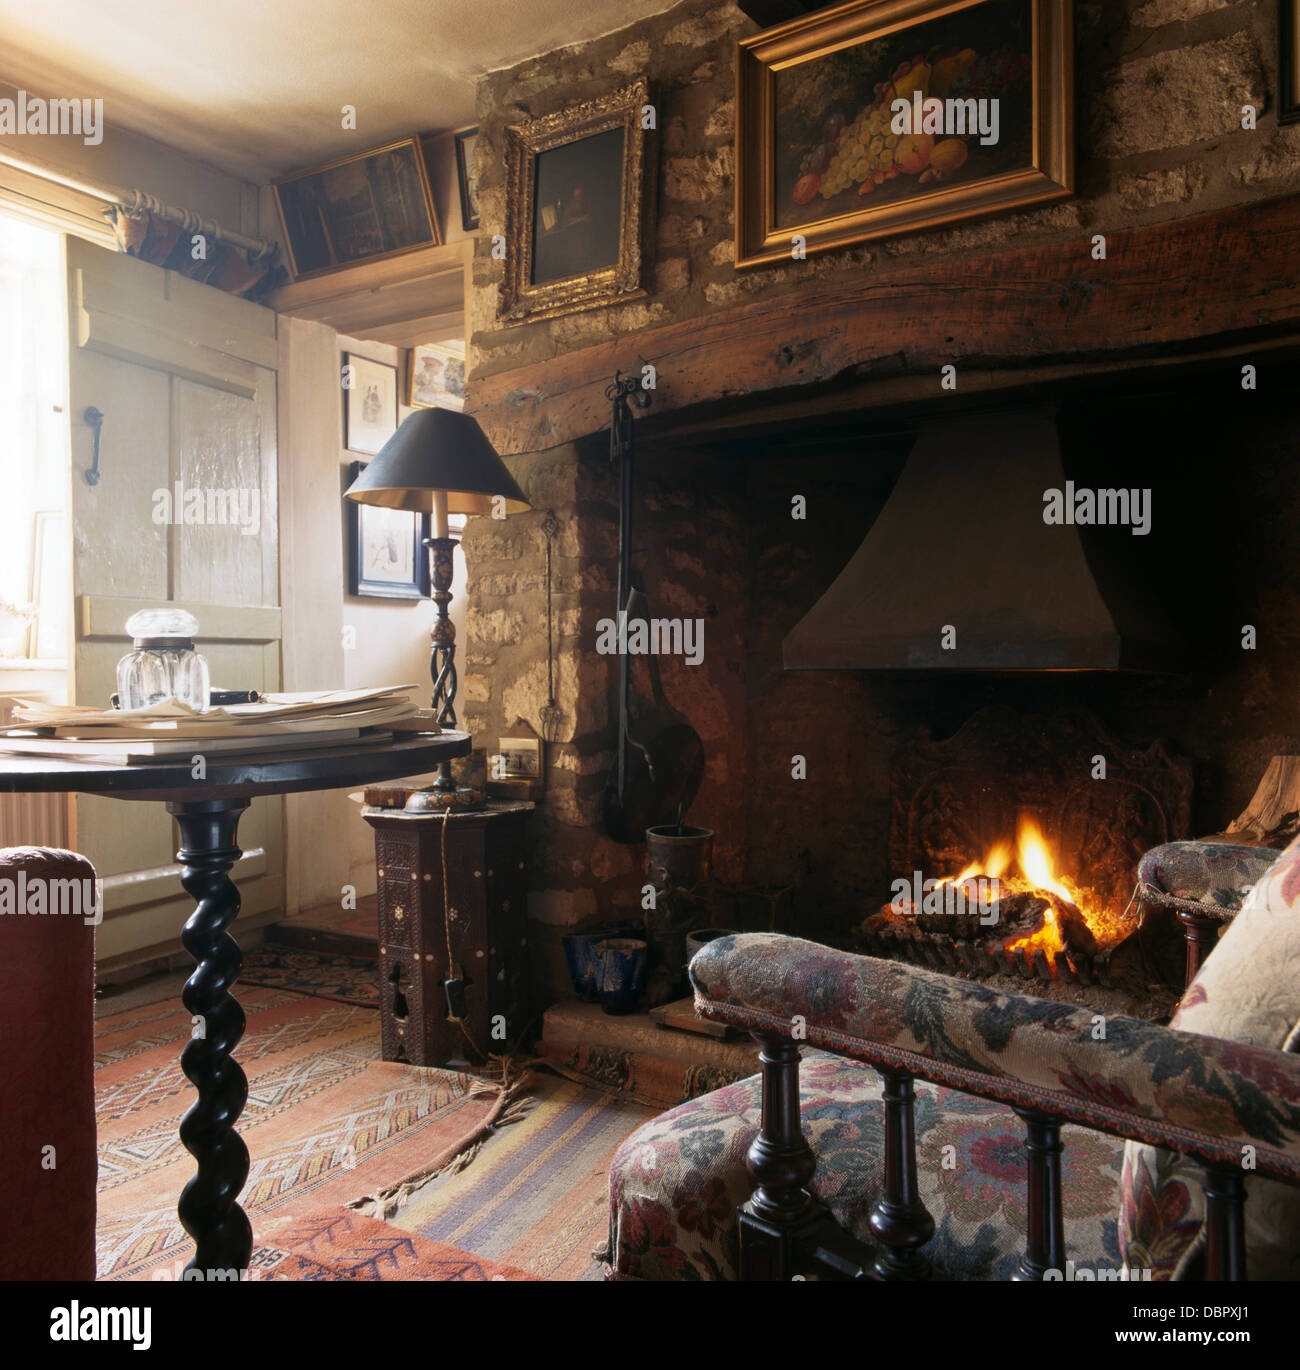 breathtaking old fashioned living room | Pictures on wall above inglenook fireplace in old ...